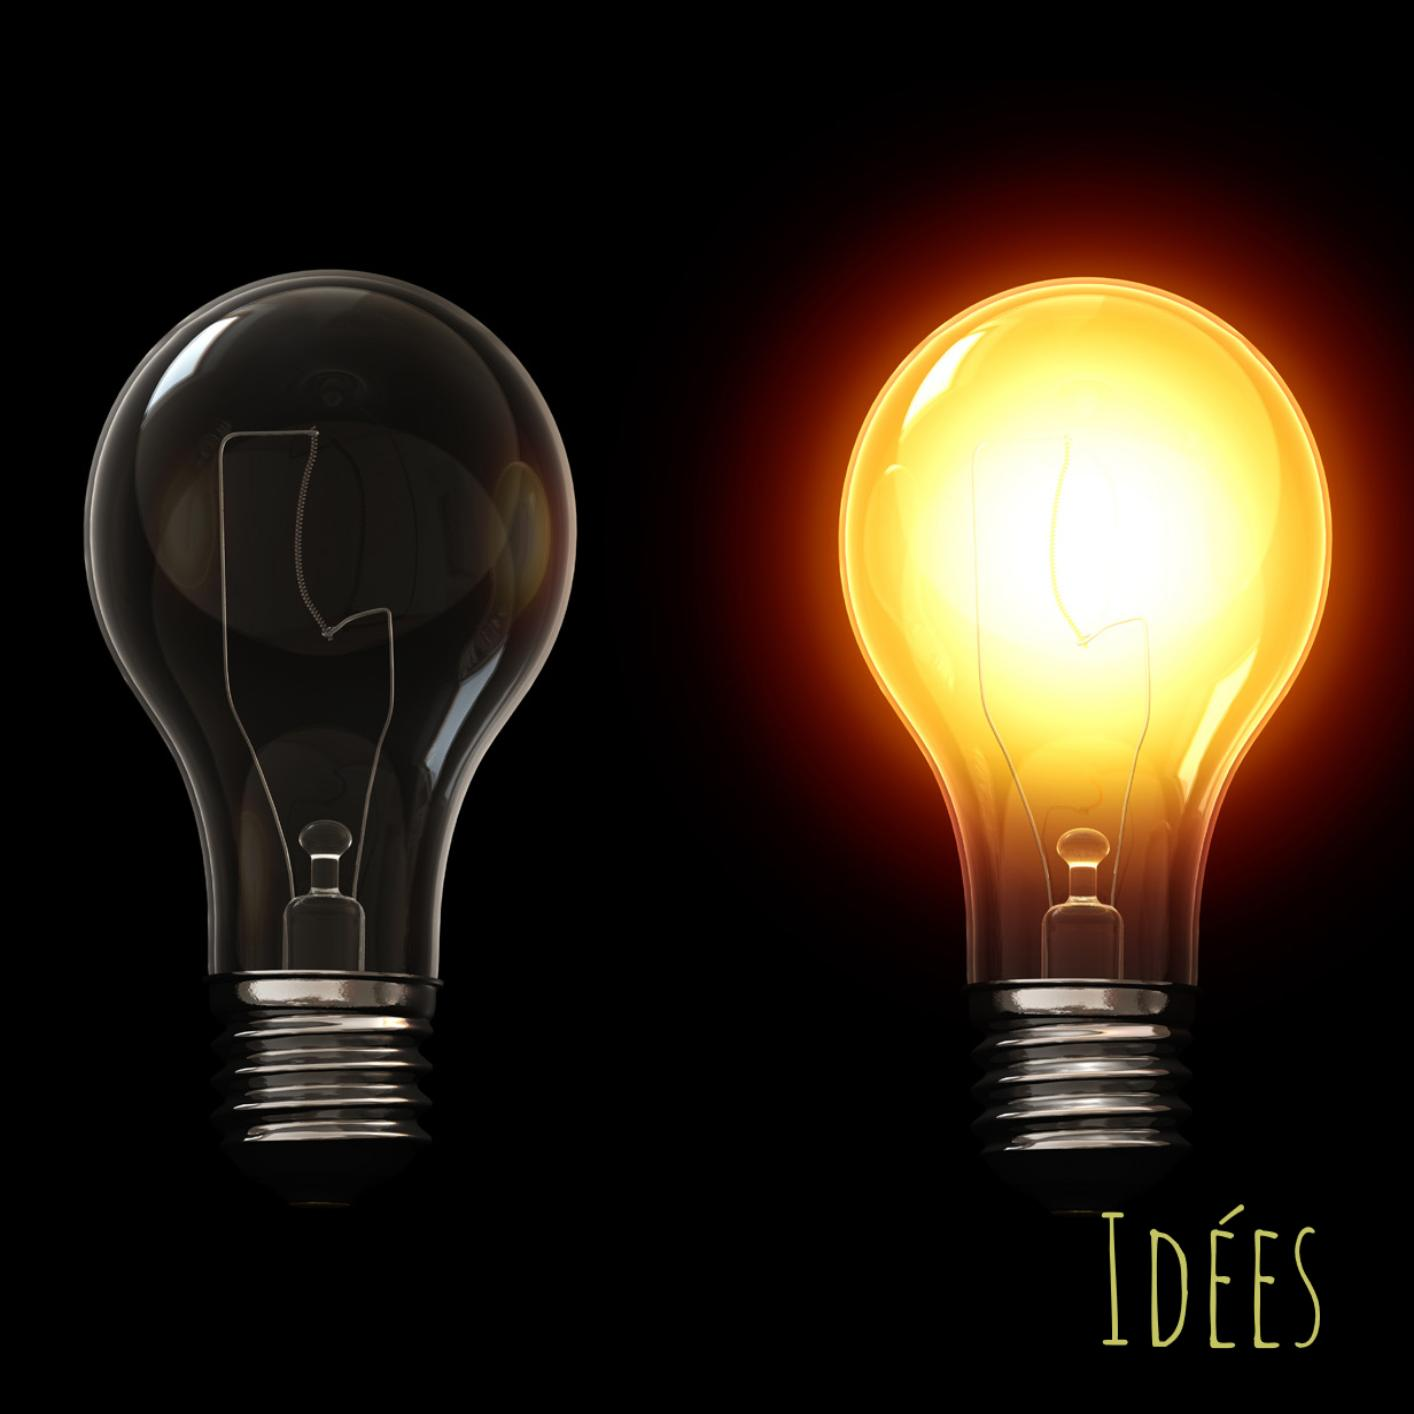 Two lights bulbs one off and one on to illustrate the birth of new ideas